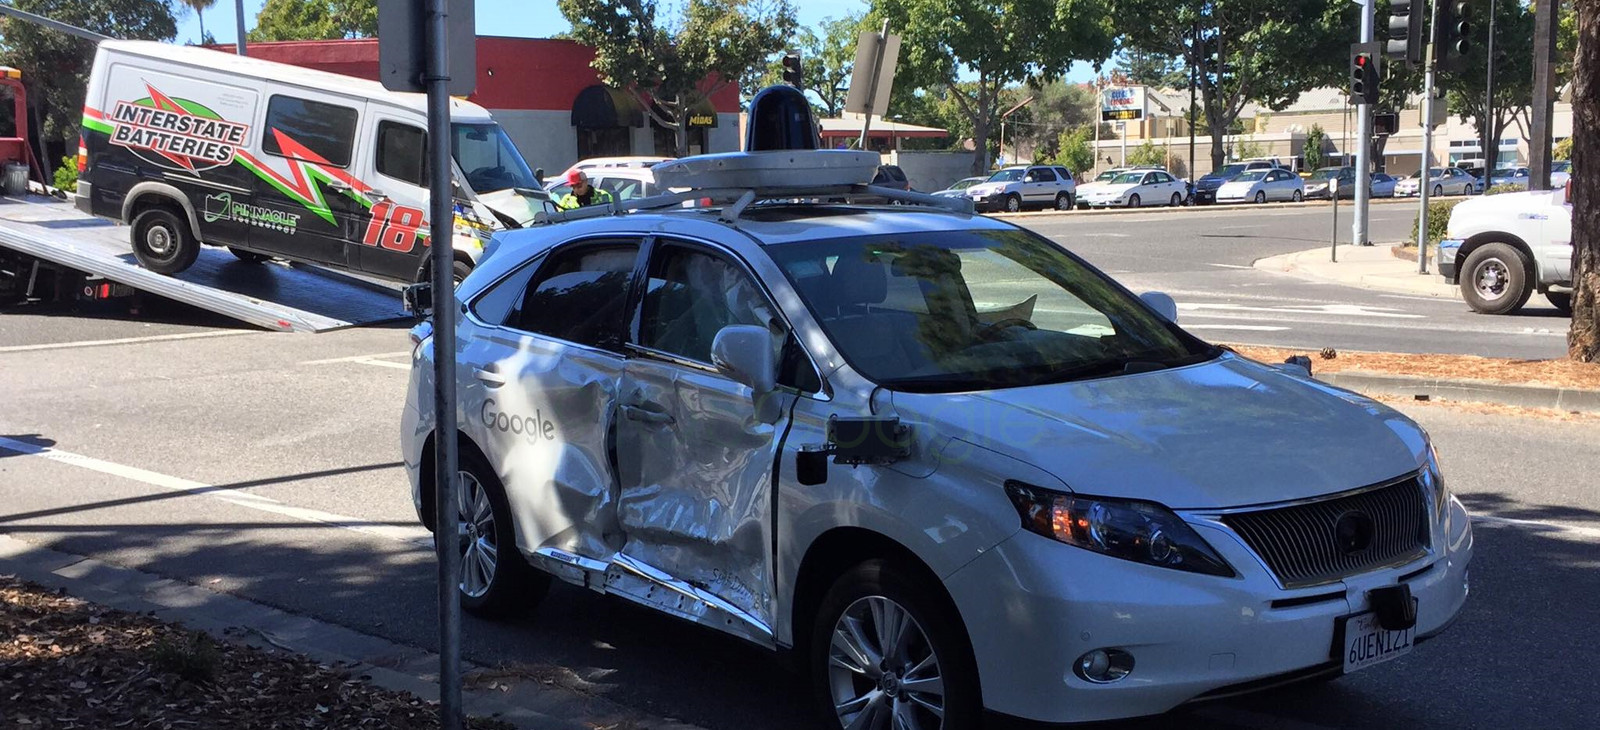 1474875709_google-self-driving-car-intersection-accident.jpg